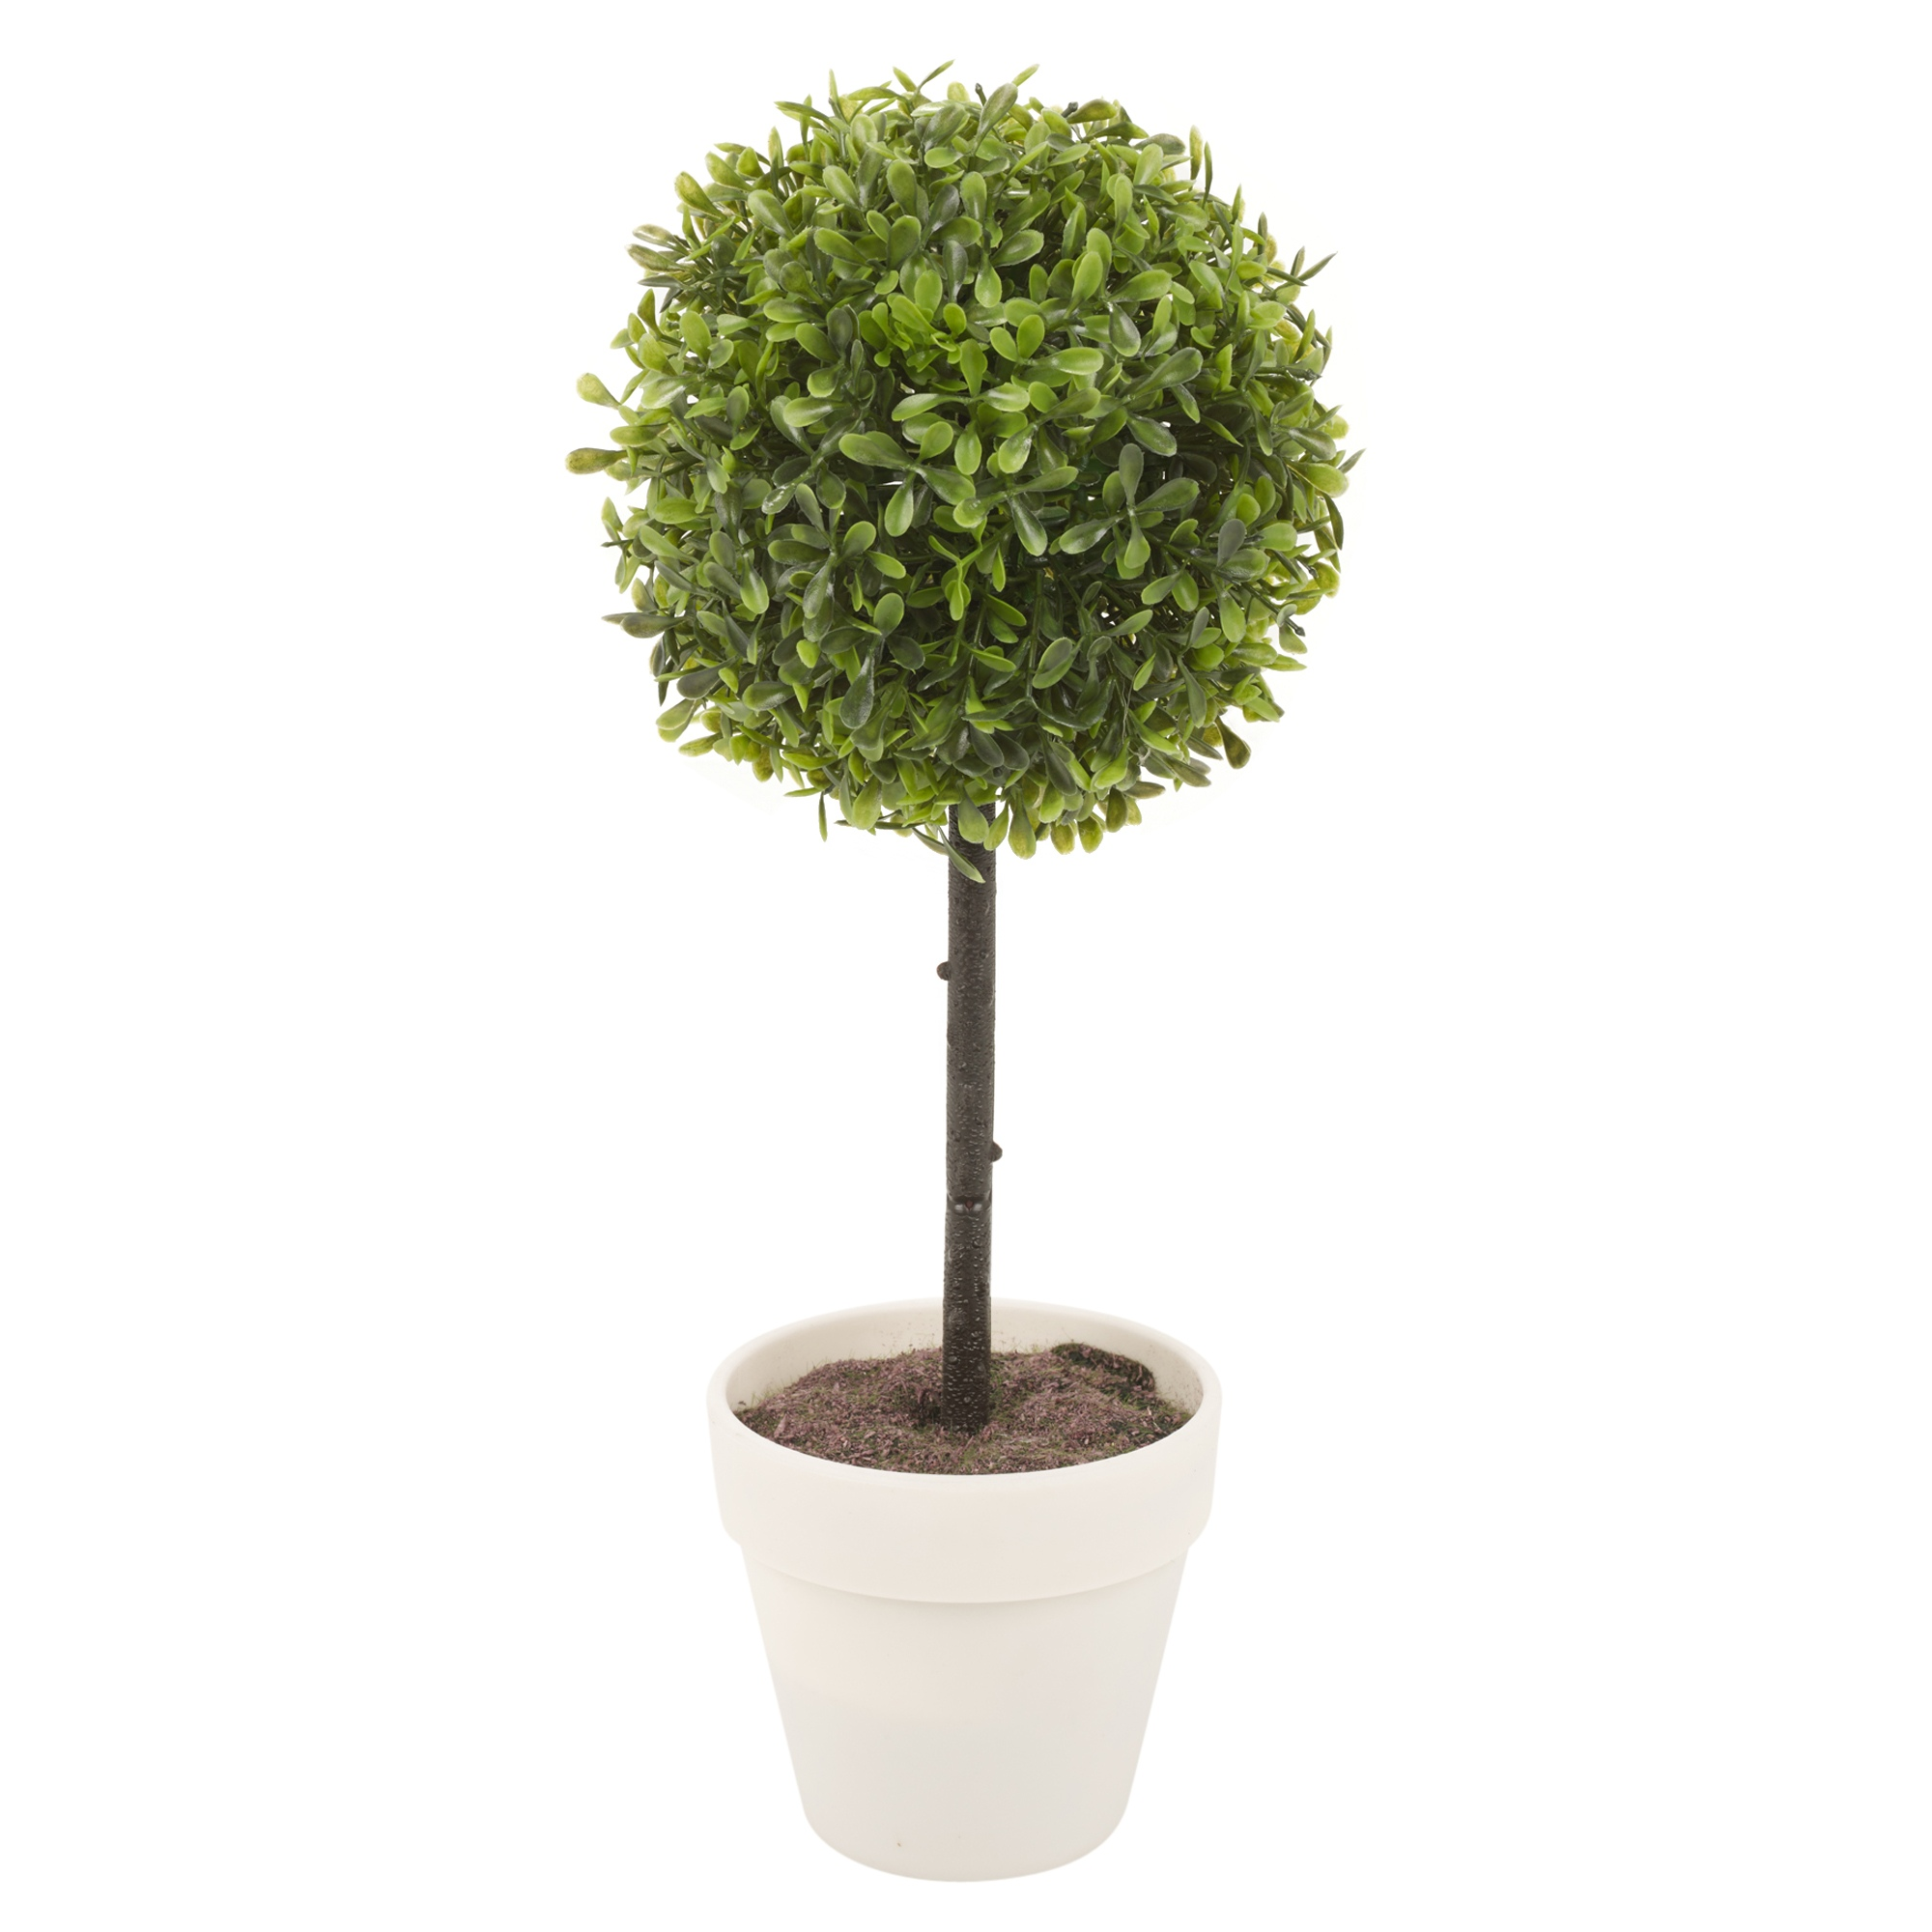 Potted buxus box ball plant decorative artificial indoor for Outdoor decorative plants